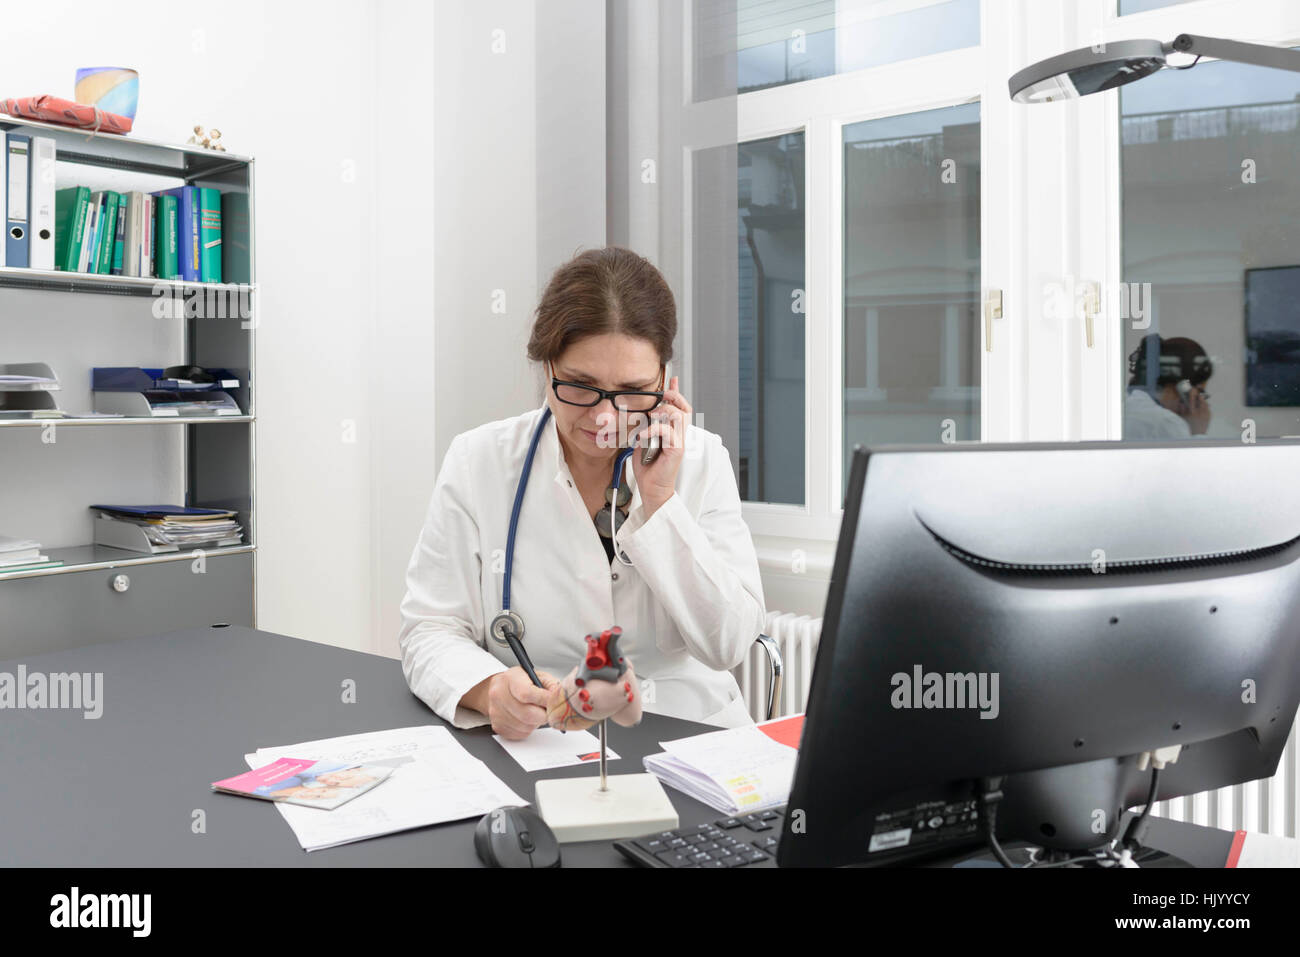 Female doctor  consulting patients over the telephone - Stock Image